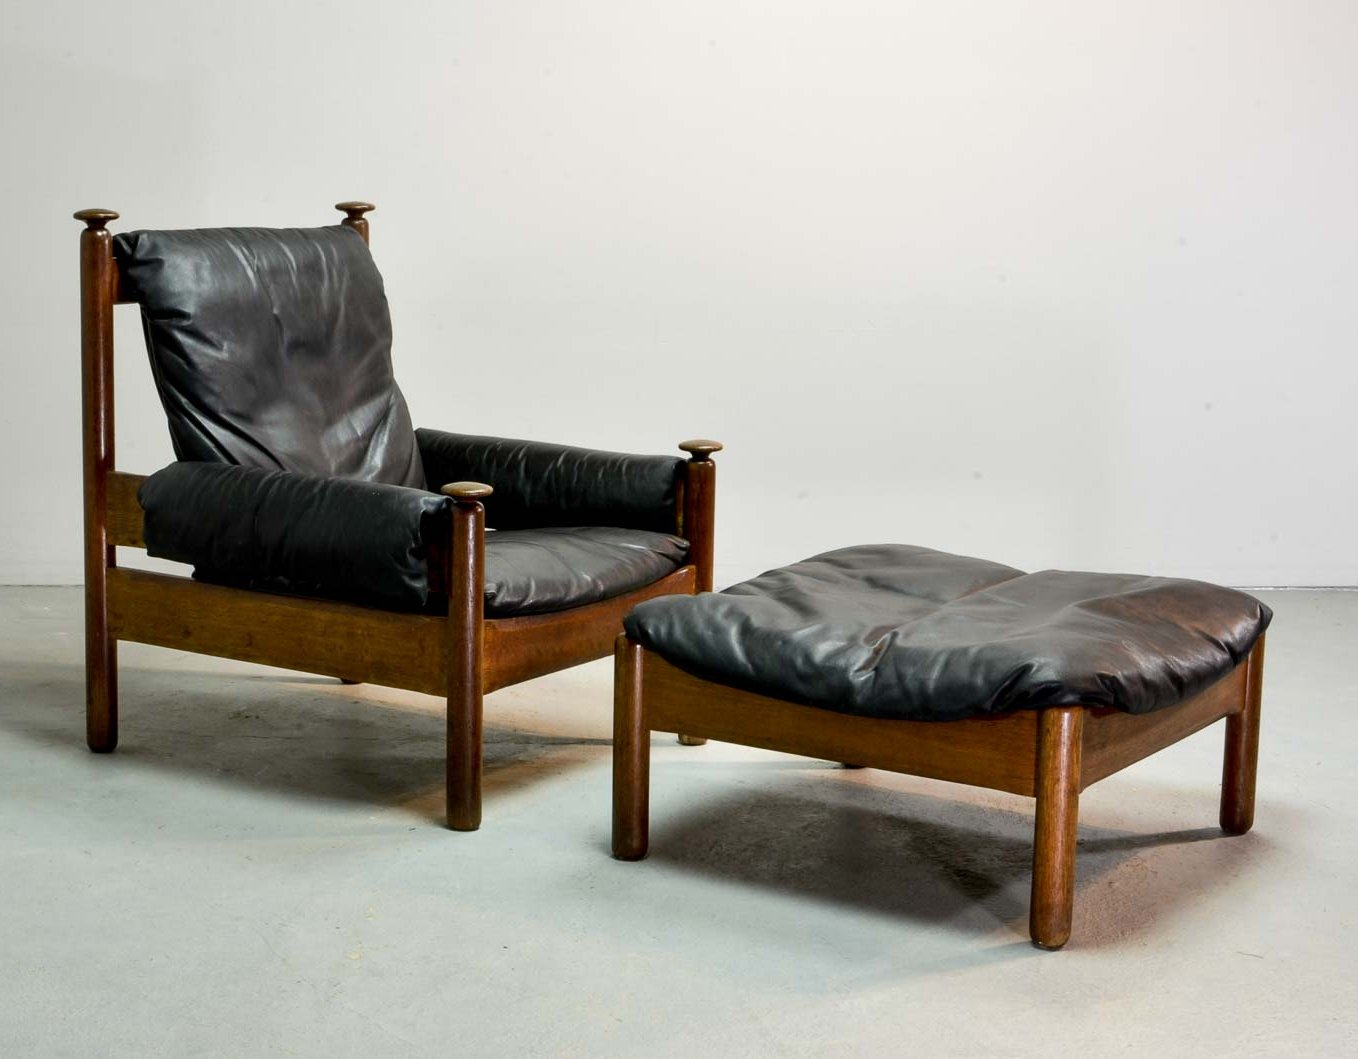 Mid Century Scandinavian Design Leather Lounge Chair With Ottoman 1960s 73216